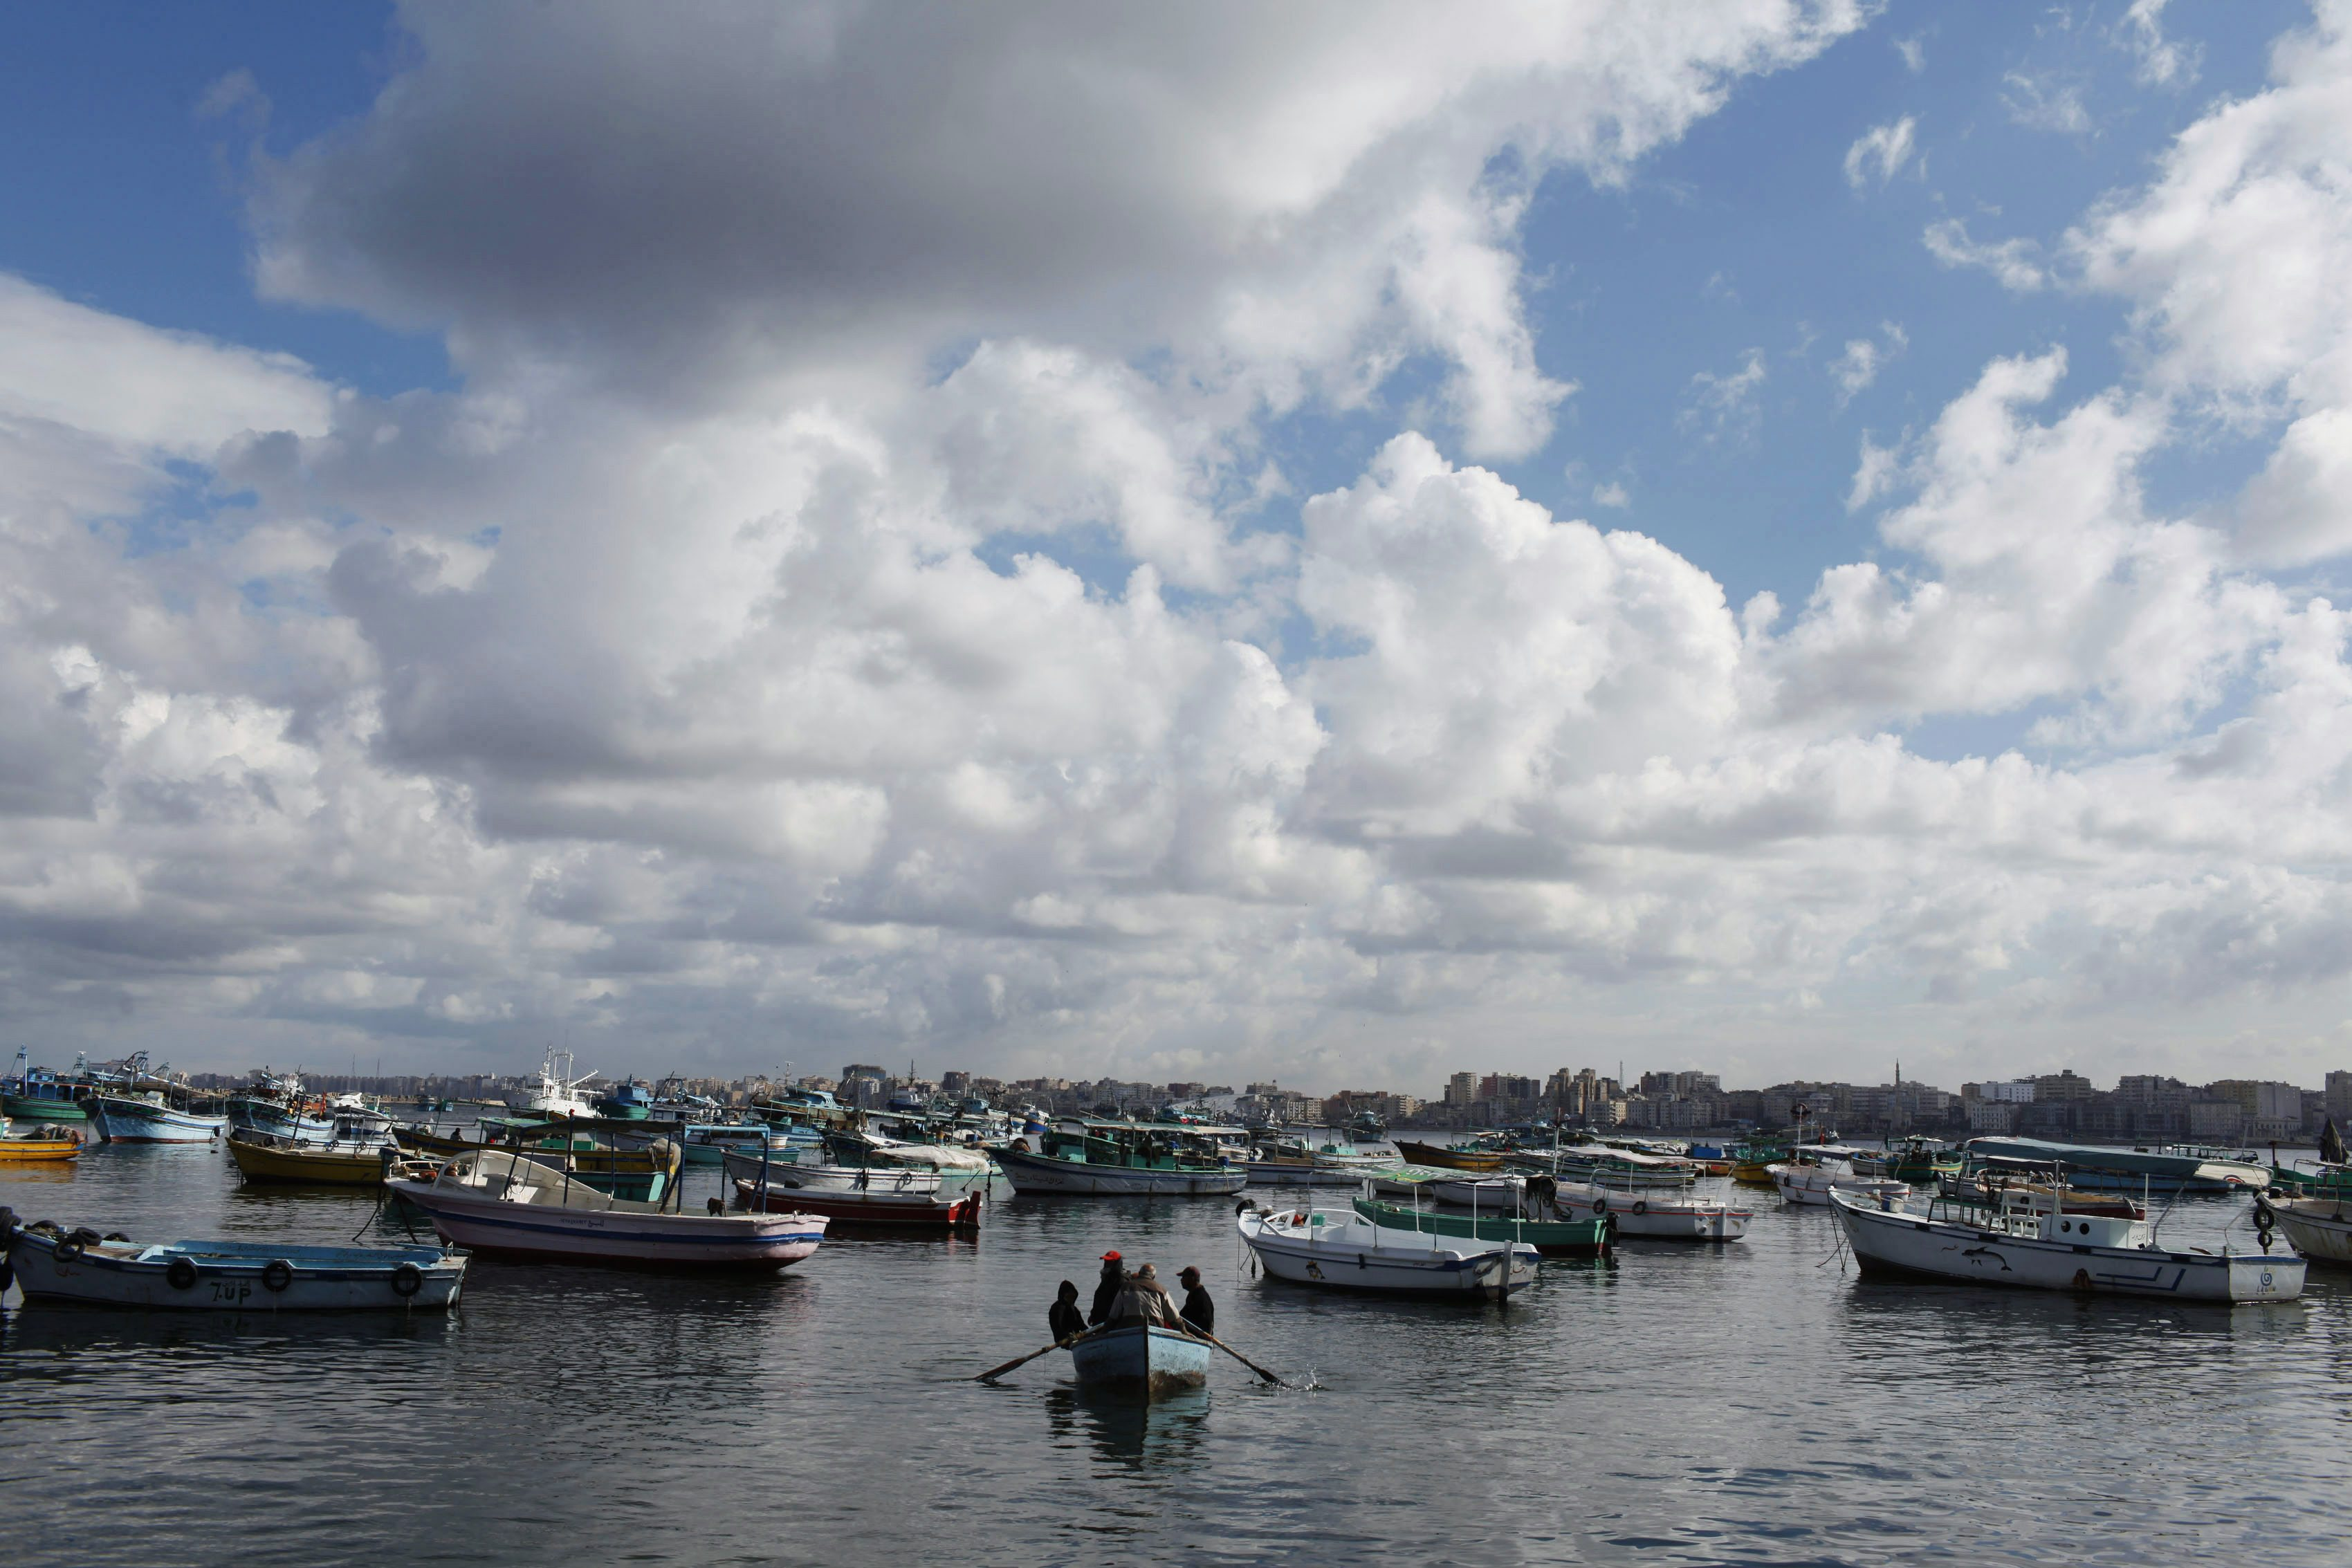 Egypt closes ports due to bad weather